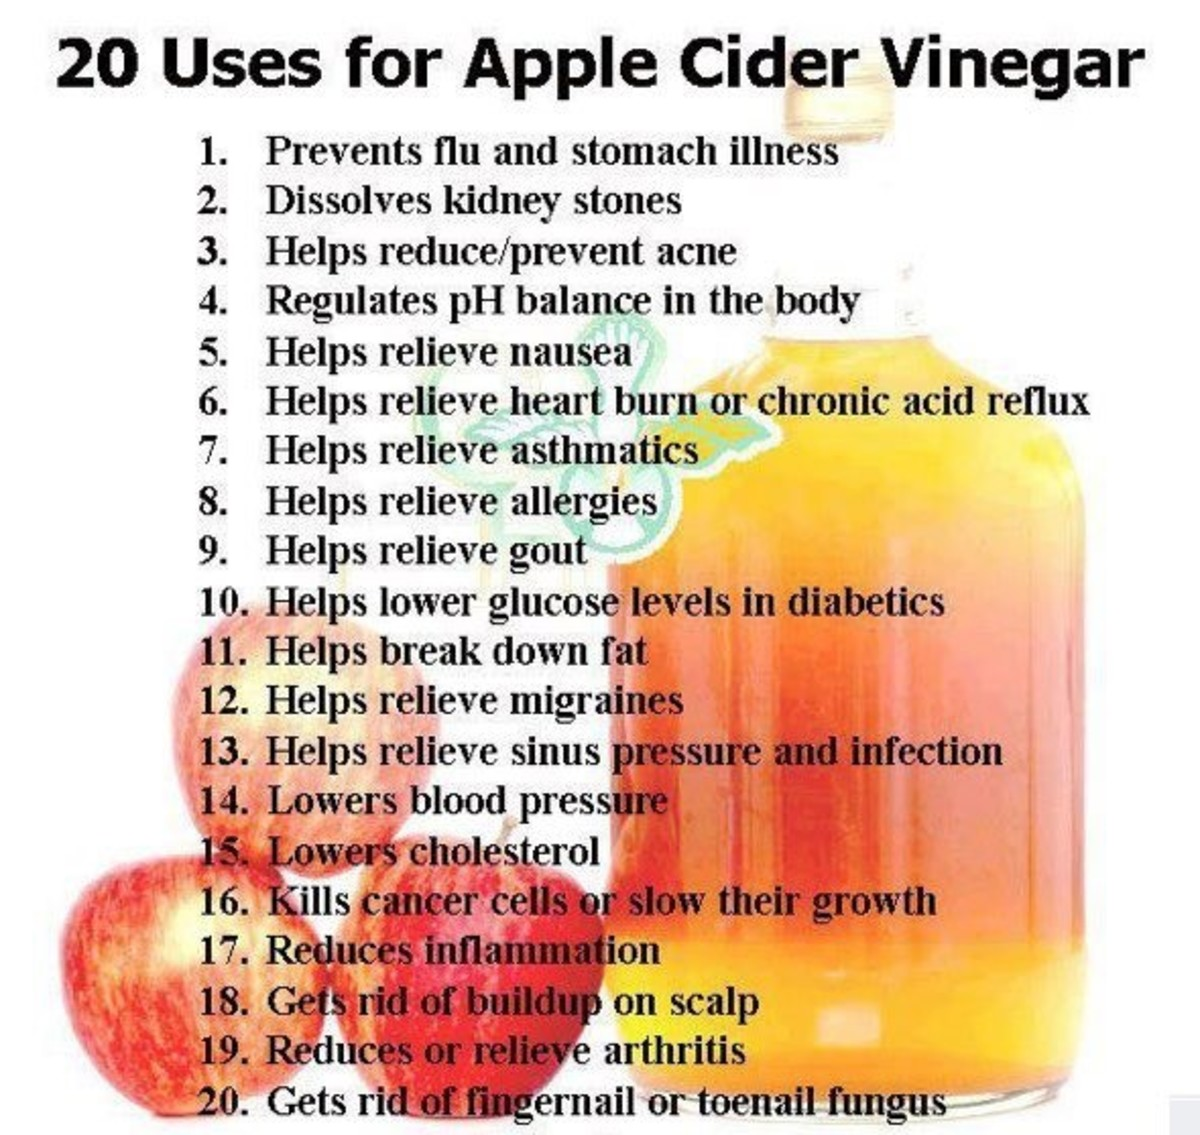 In this photo are 20 wonderful uses for Apple Cider Vinegar.